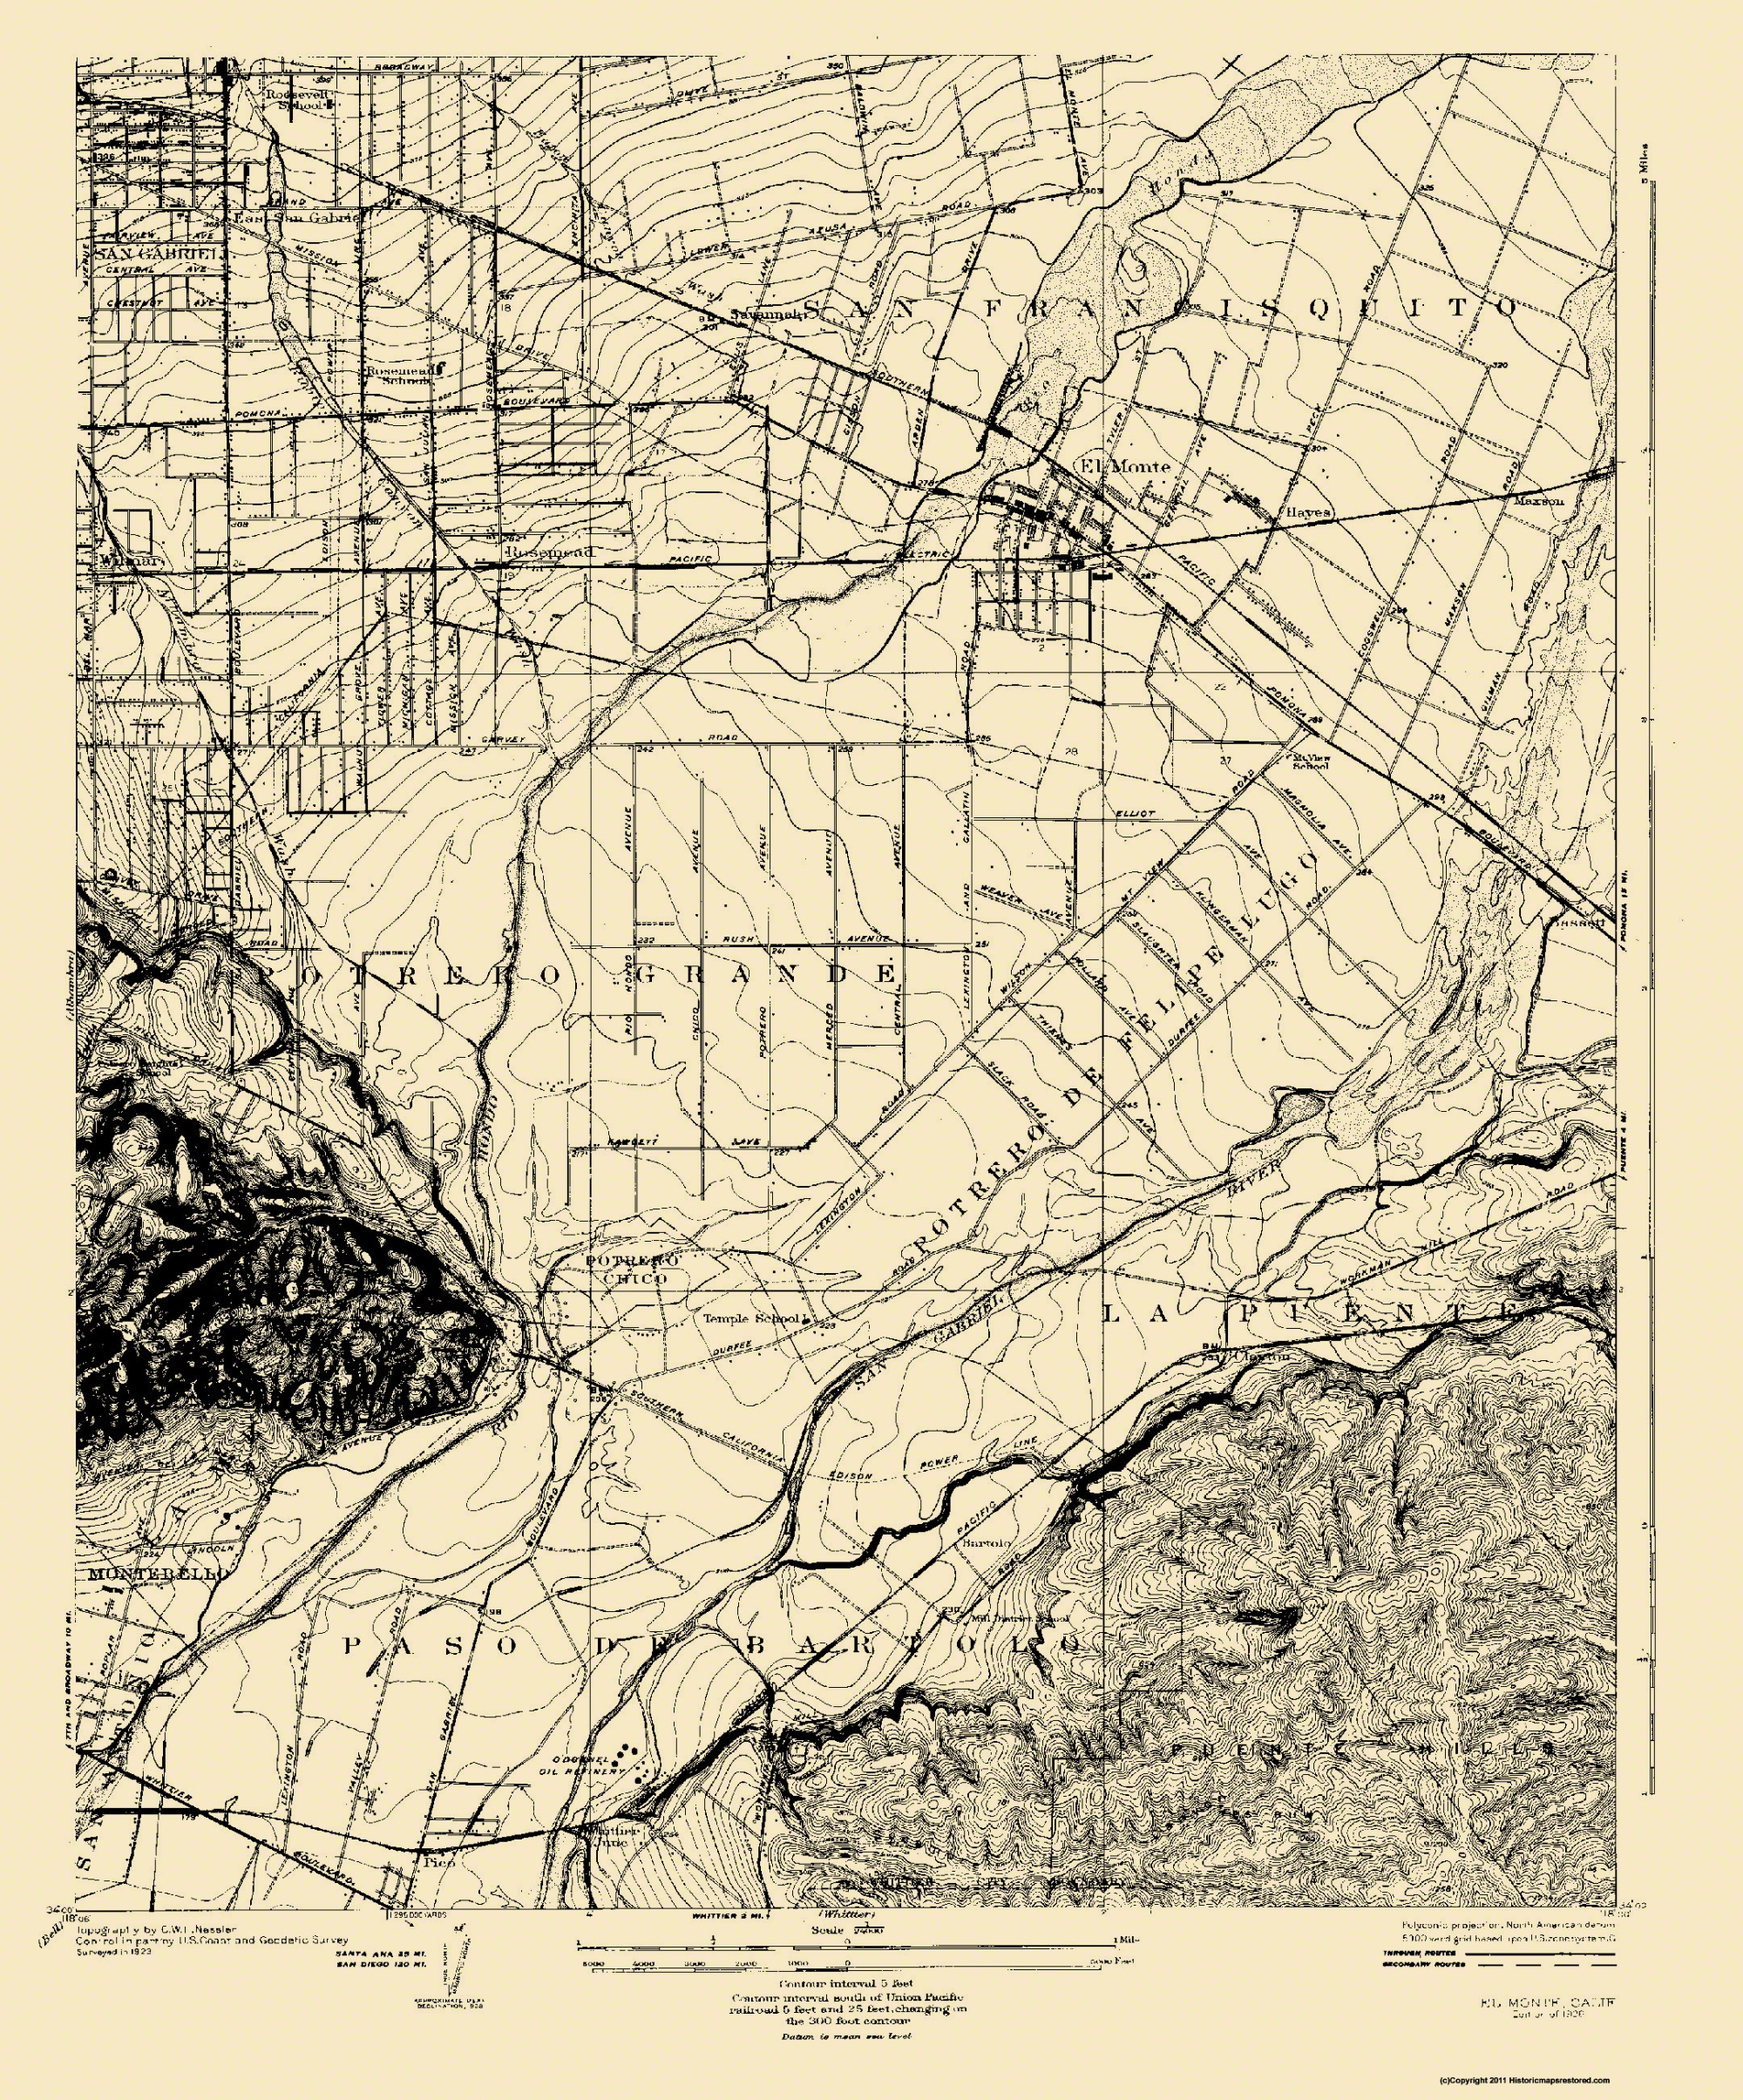 Old Topographical Map El Monte California 1926